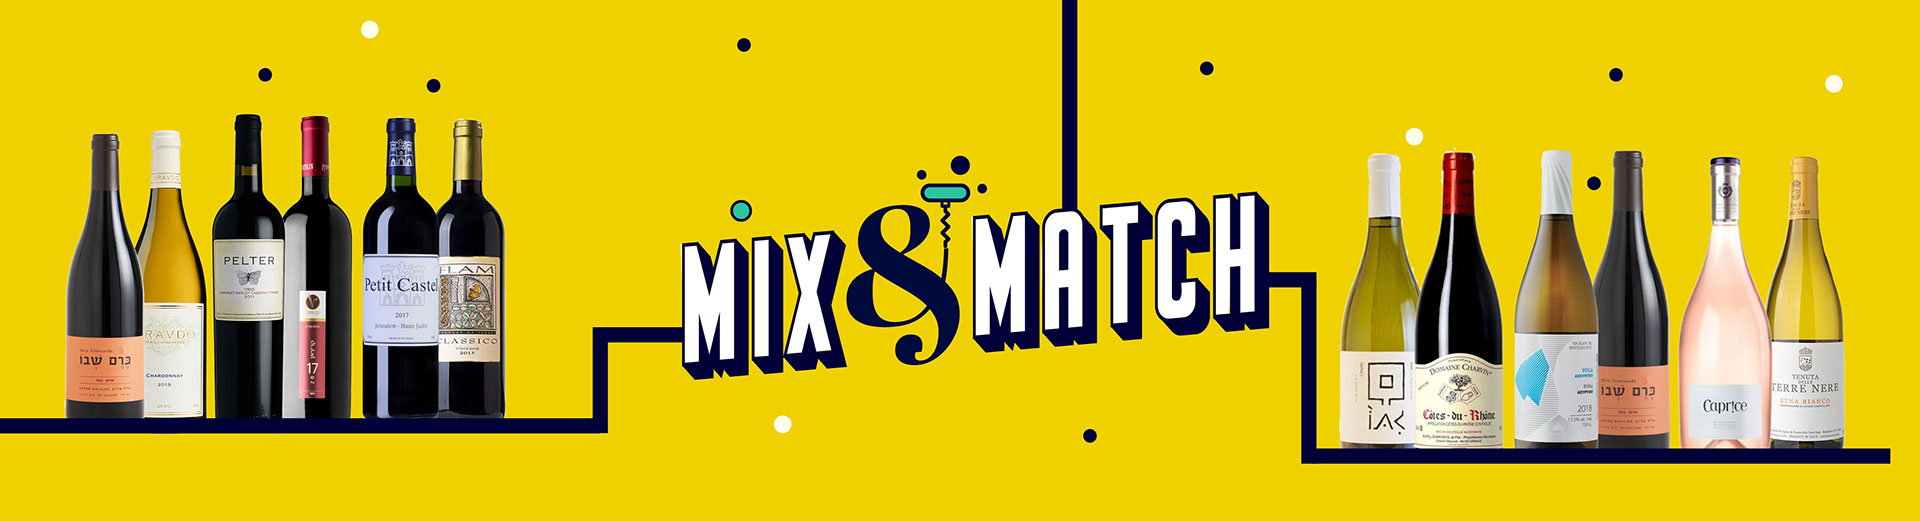 mix&match-cover